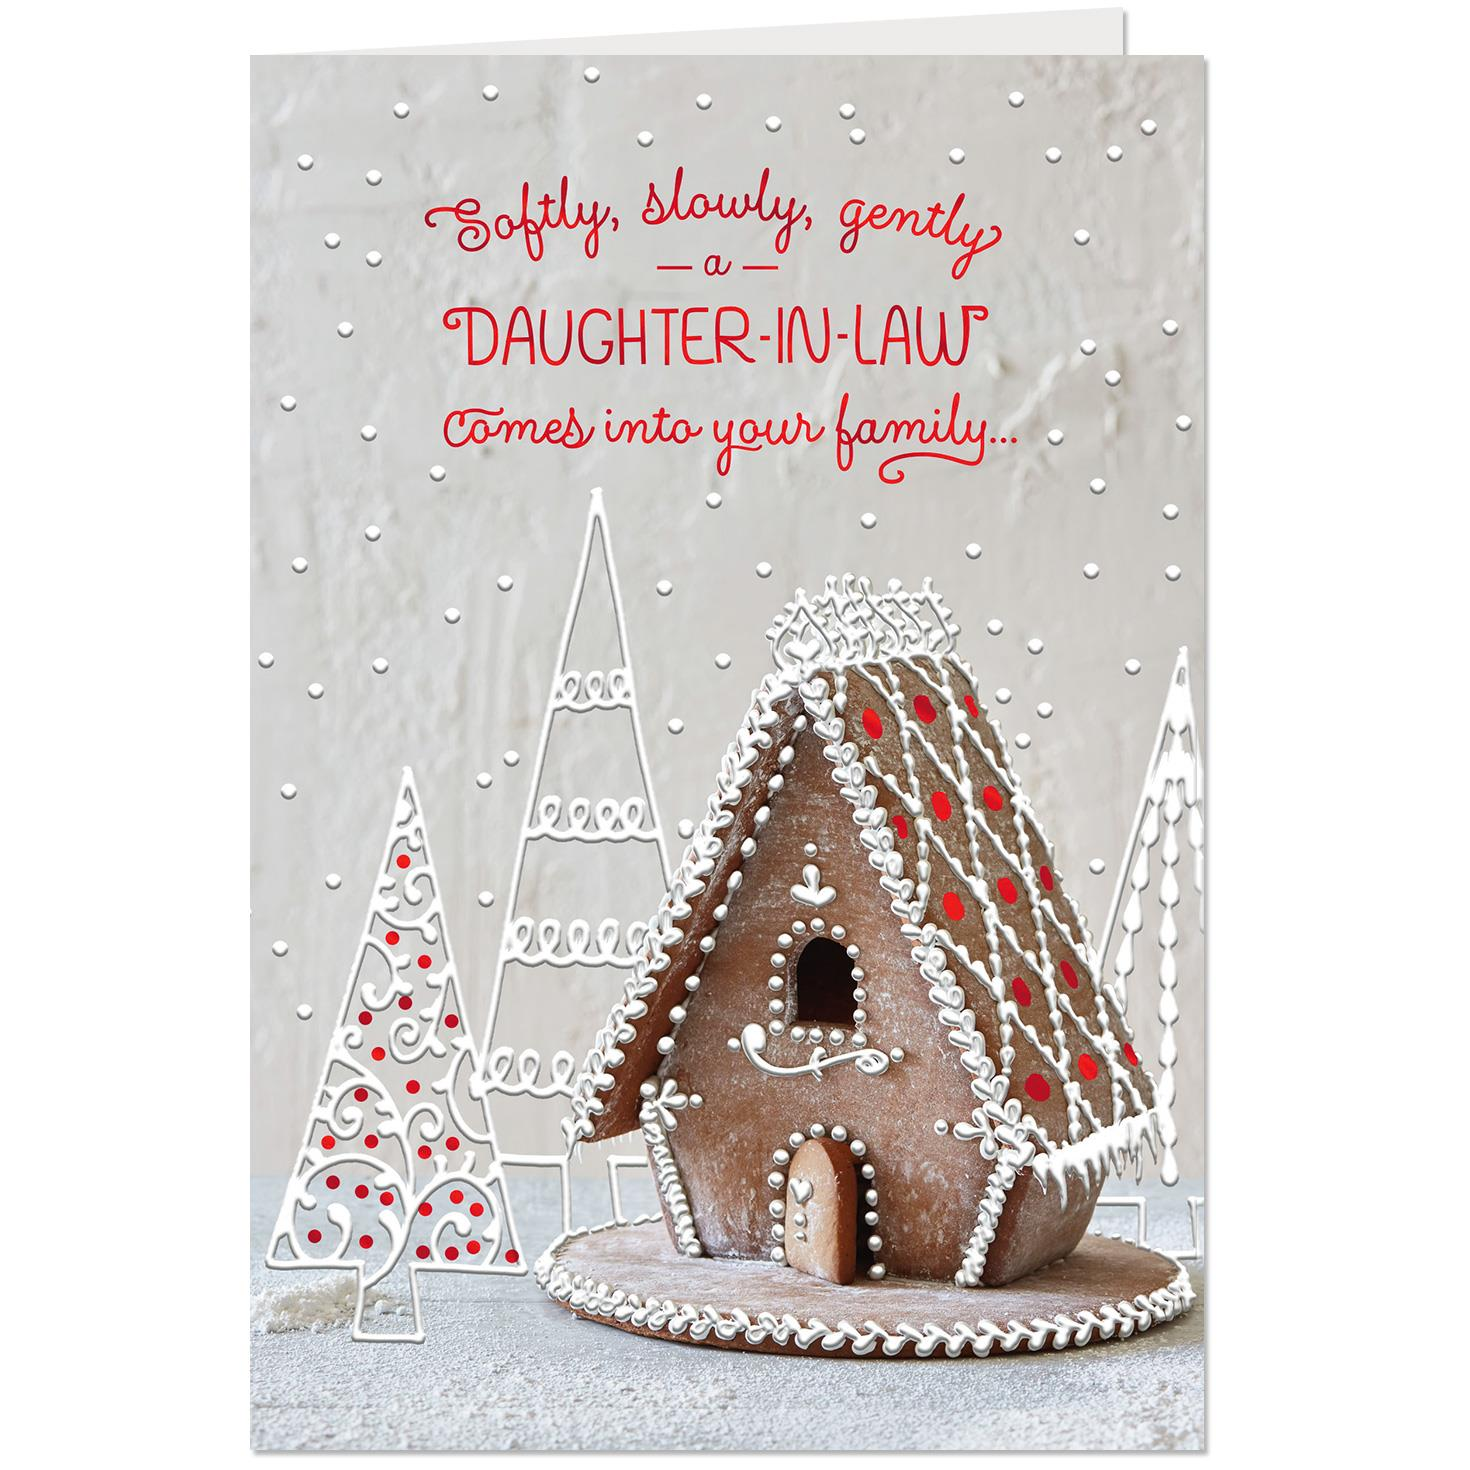 Gingerbread Cottage Christmas Card For Daughter In Law Greeting